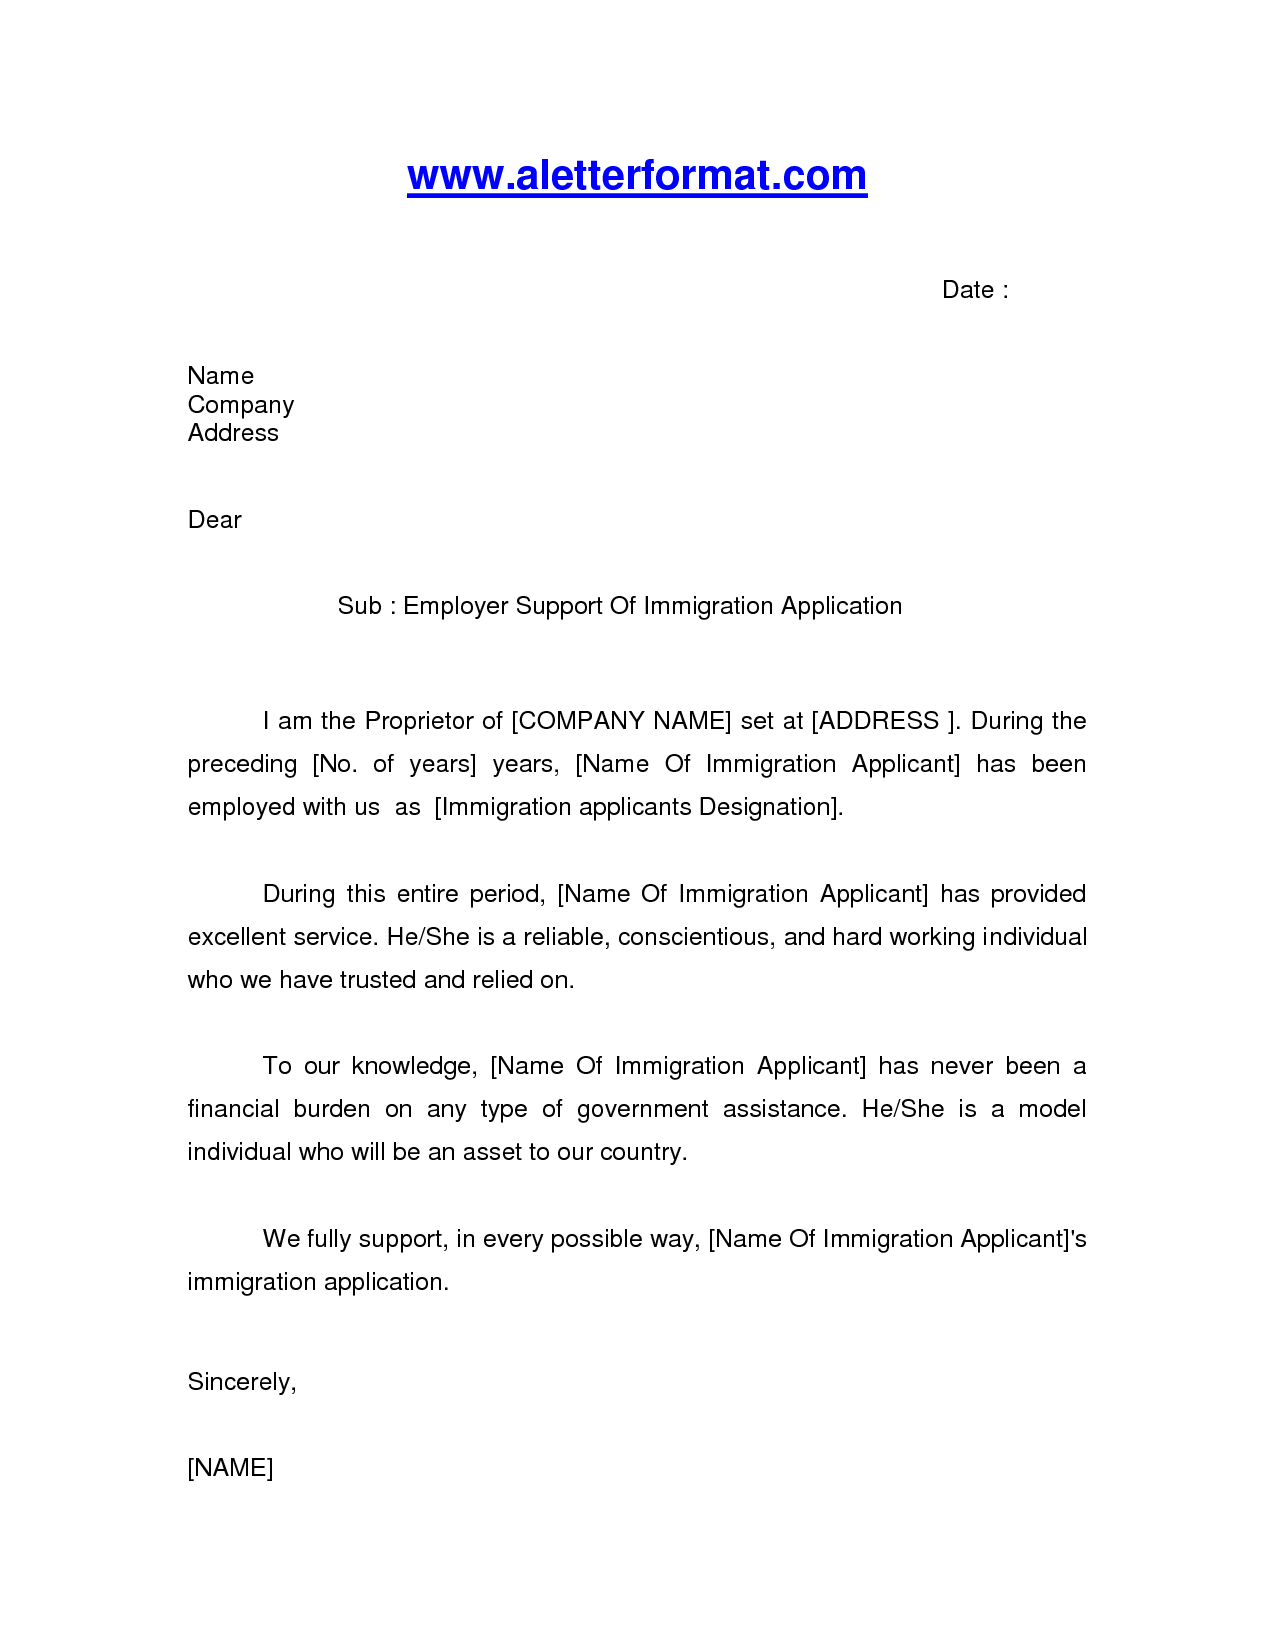 job letter for immigration